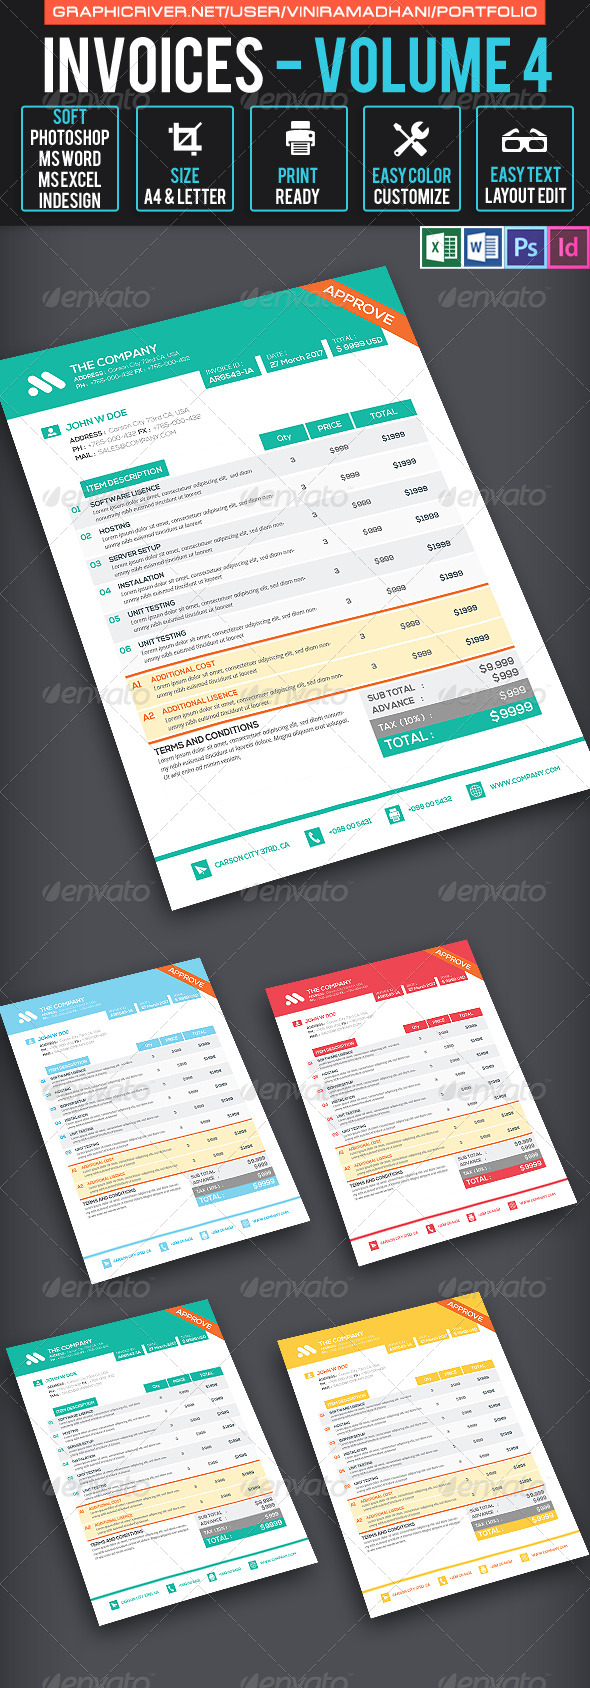 GraphicRiver Invoices Volume 4 7605633